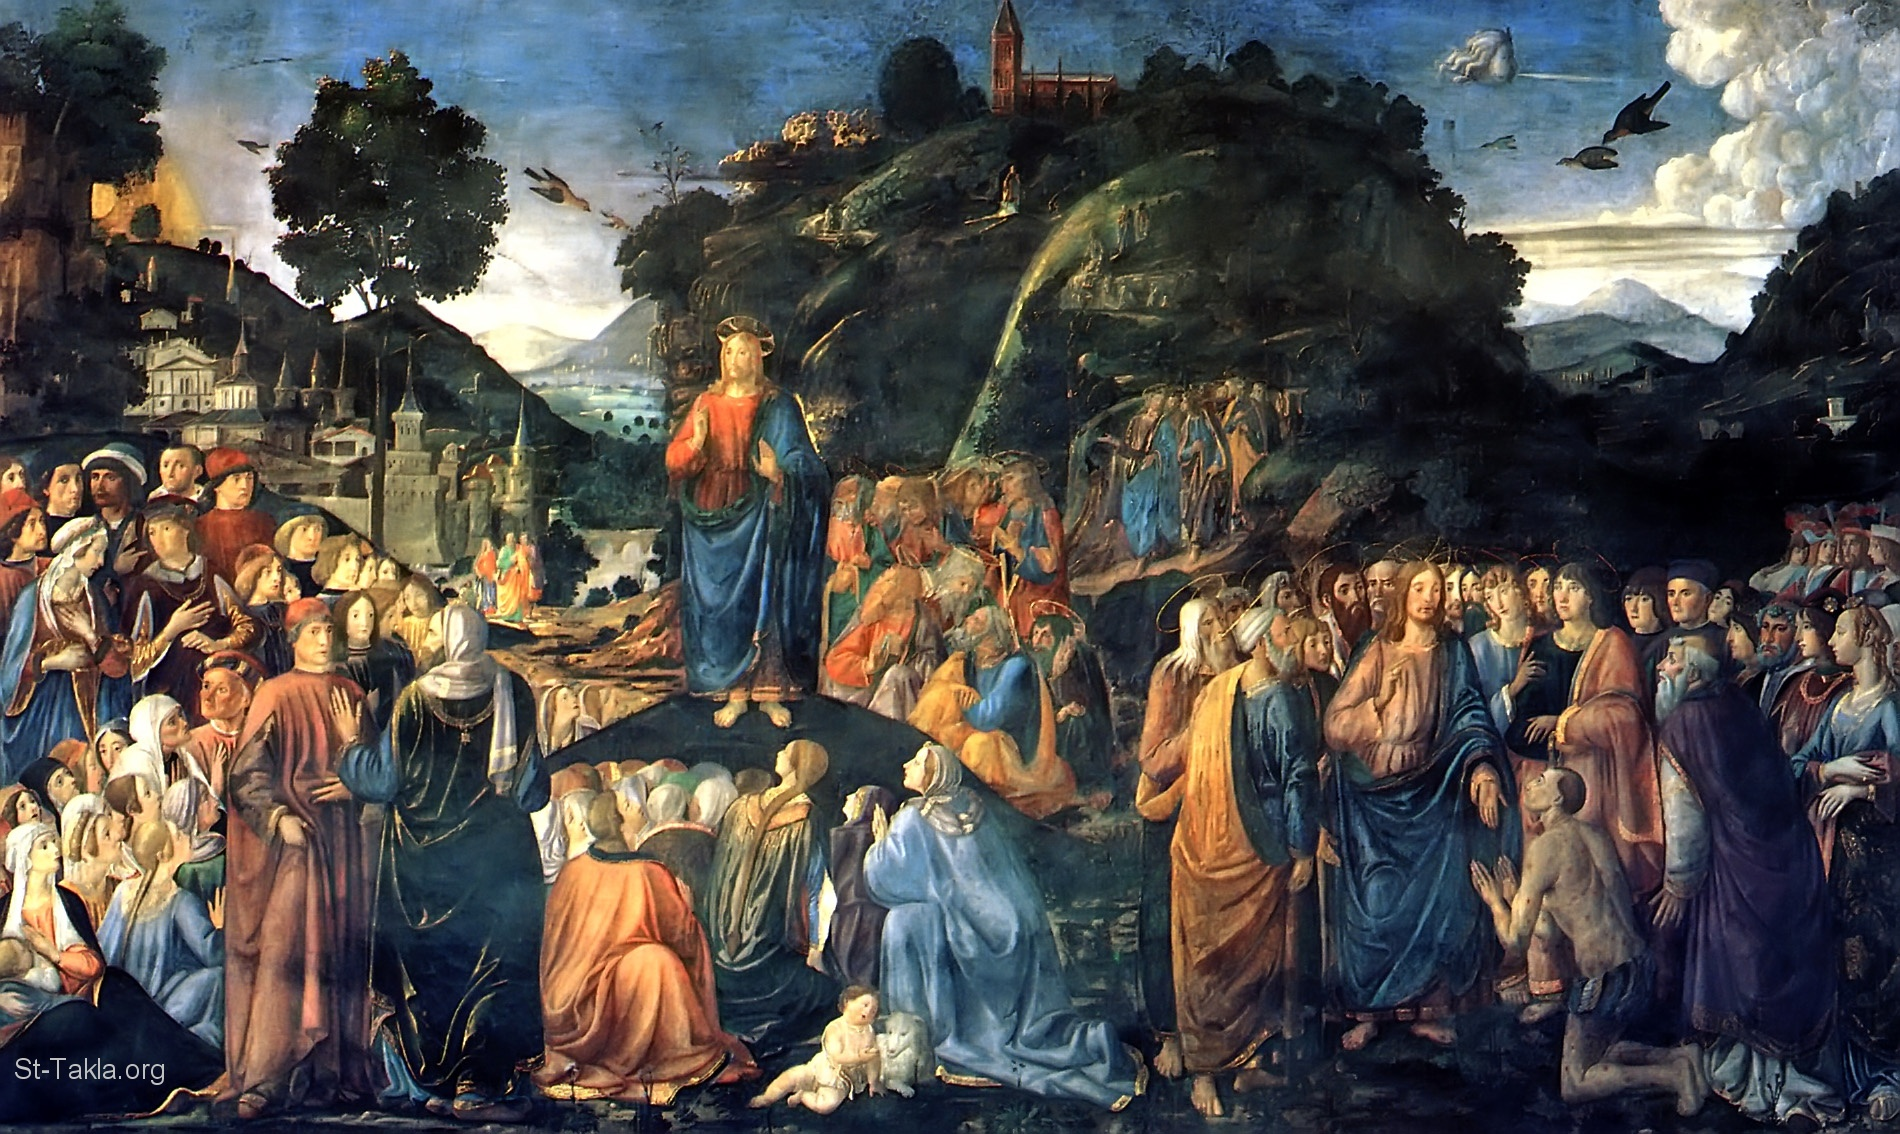 St-Takla.org Image: Painting of Jesus, Sermon on the Mount, and the miracle of Healing of the Leper, by Cosimo Rosselli, 1481 ���� �� ���� ������ ����: ���� ����� ������ �� ������� ��� ����� �� ����� ���� ������� ��� ������ ������ ������ 1481